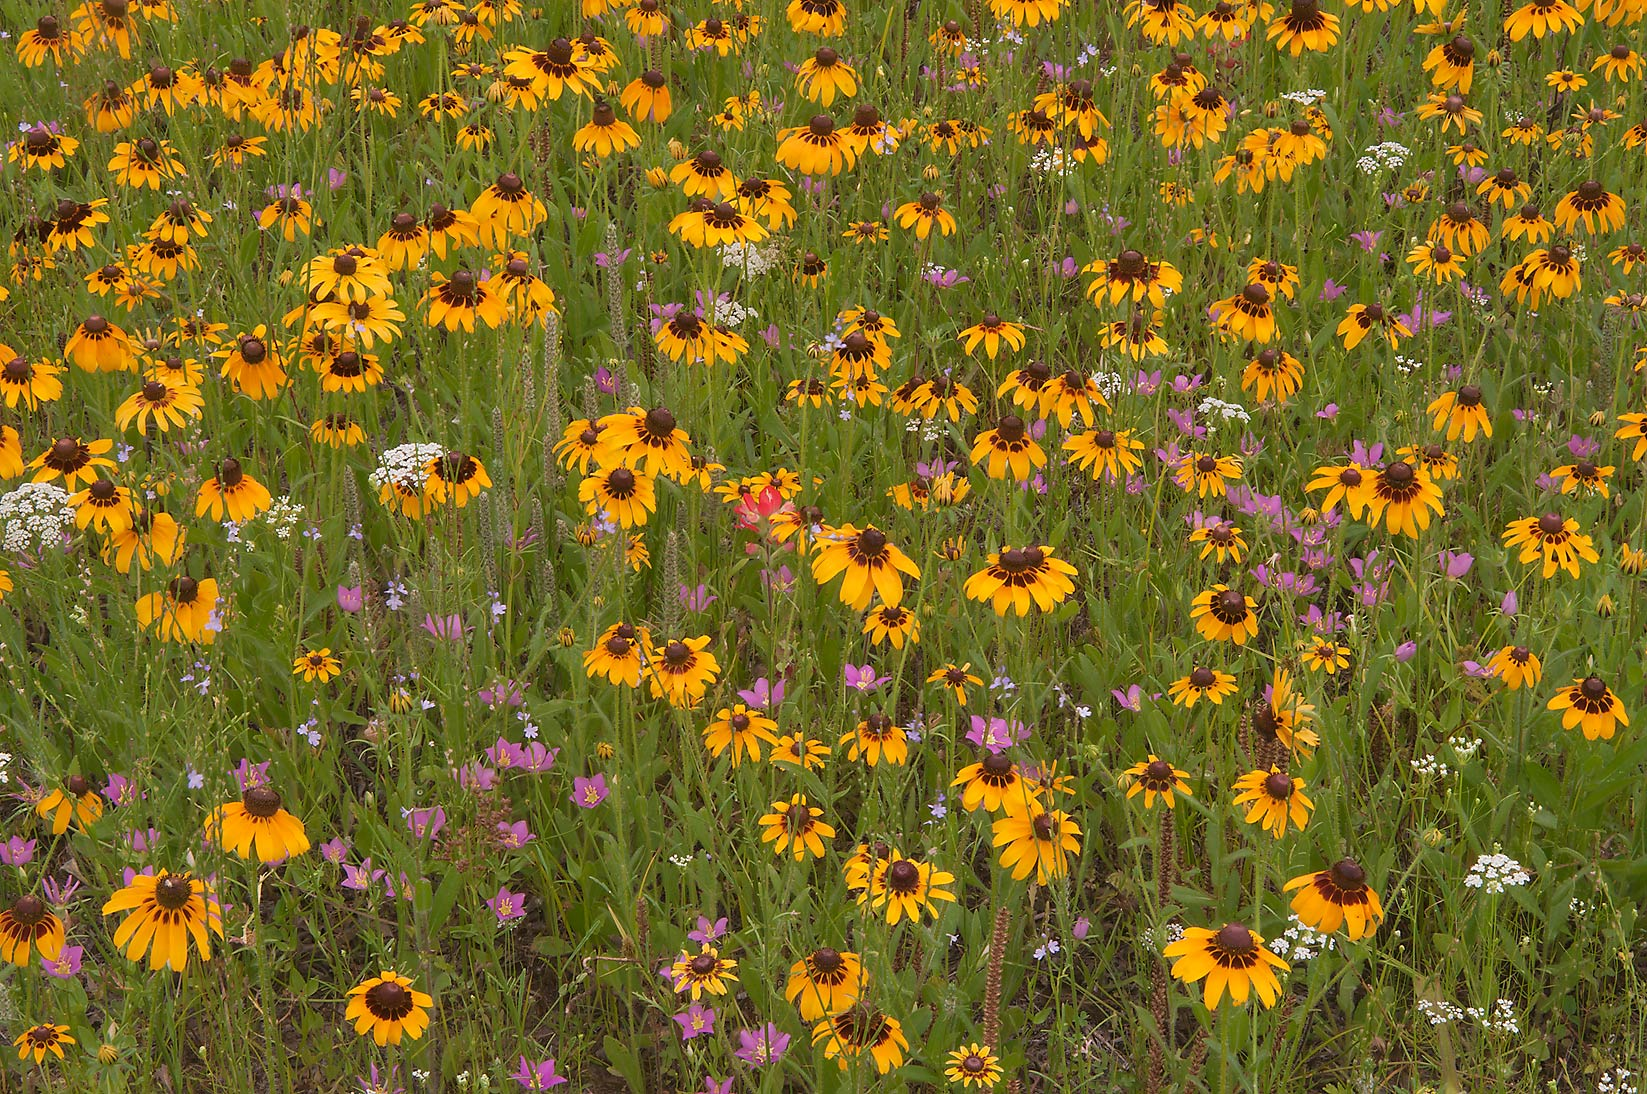 Various flowers near equestrian entrance in Lick Creek Park. College Station, Texas